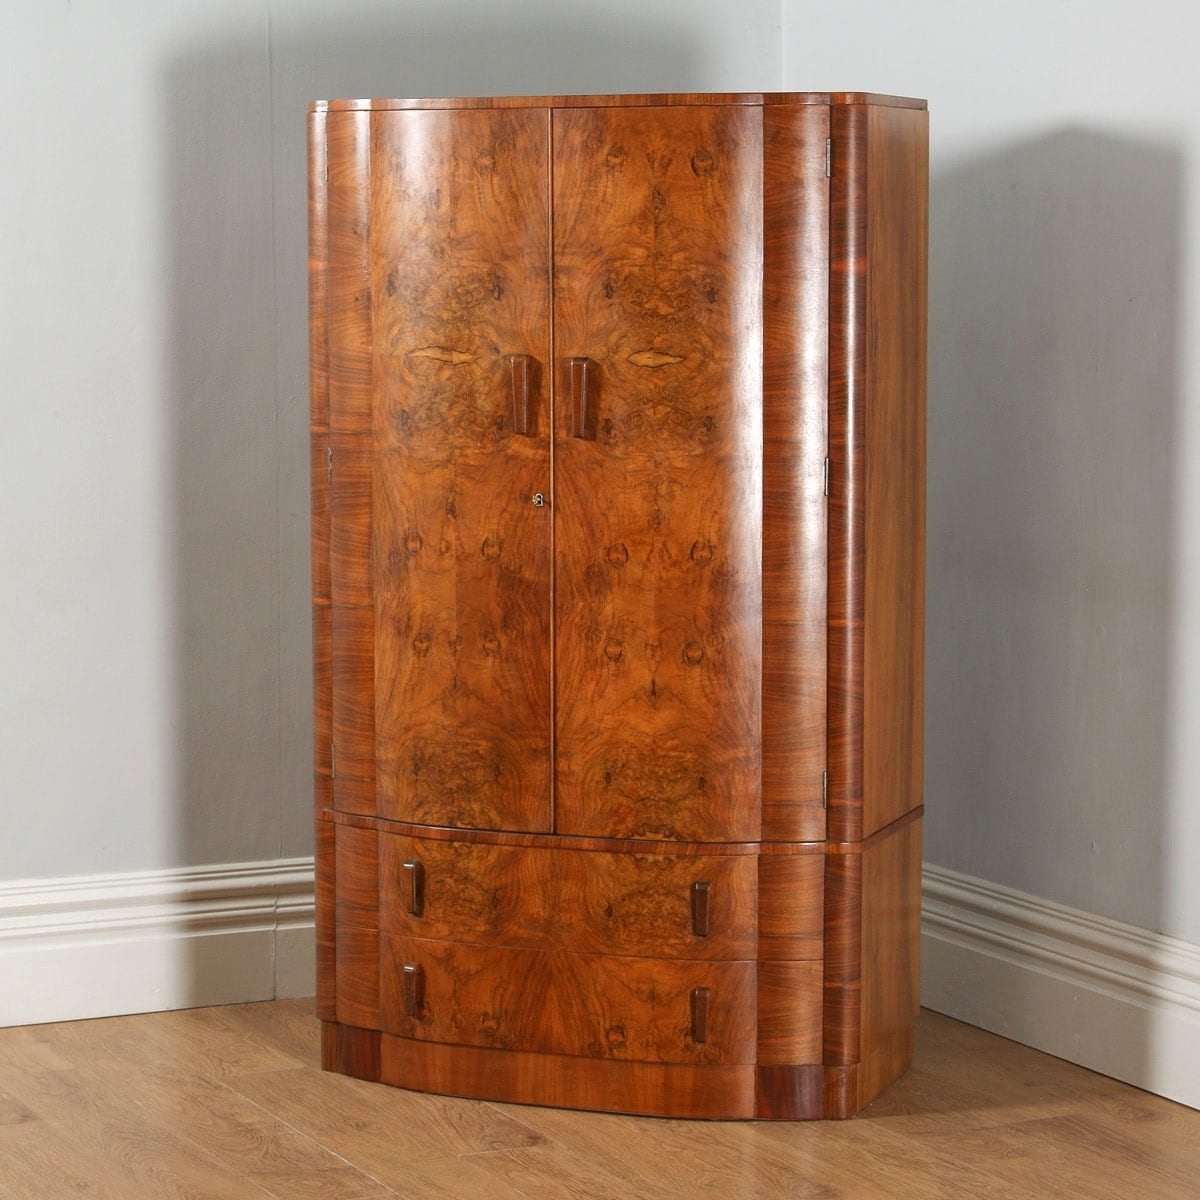 Antique English Art Deco Burr Walnut Bow Front Cloud Design With Preferred Antique Single Wardrobes (View 2 of 15)